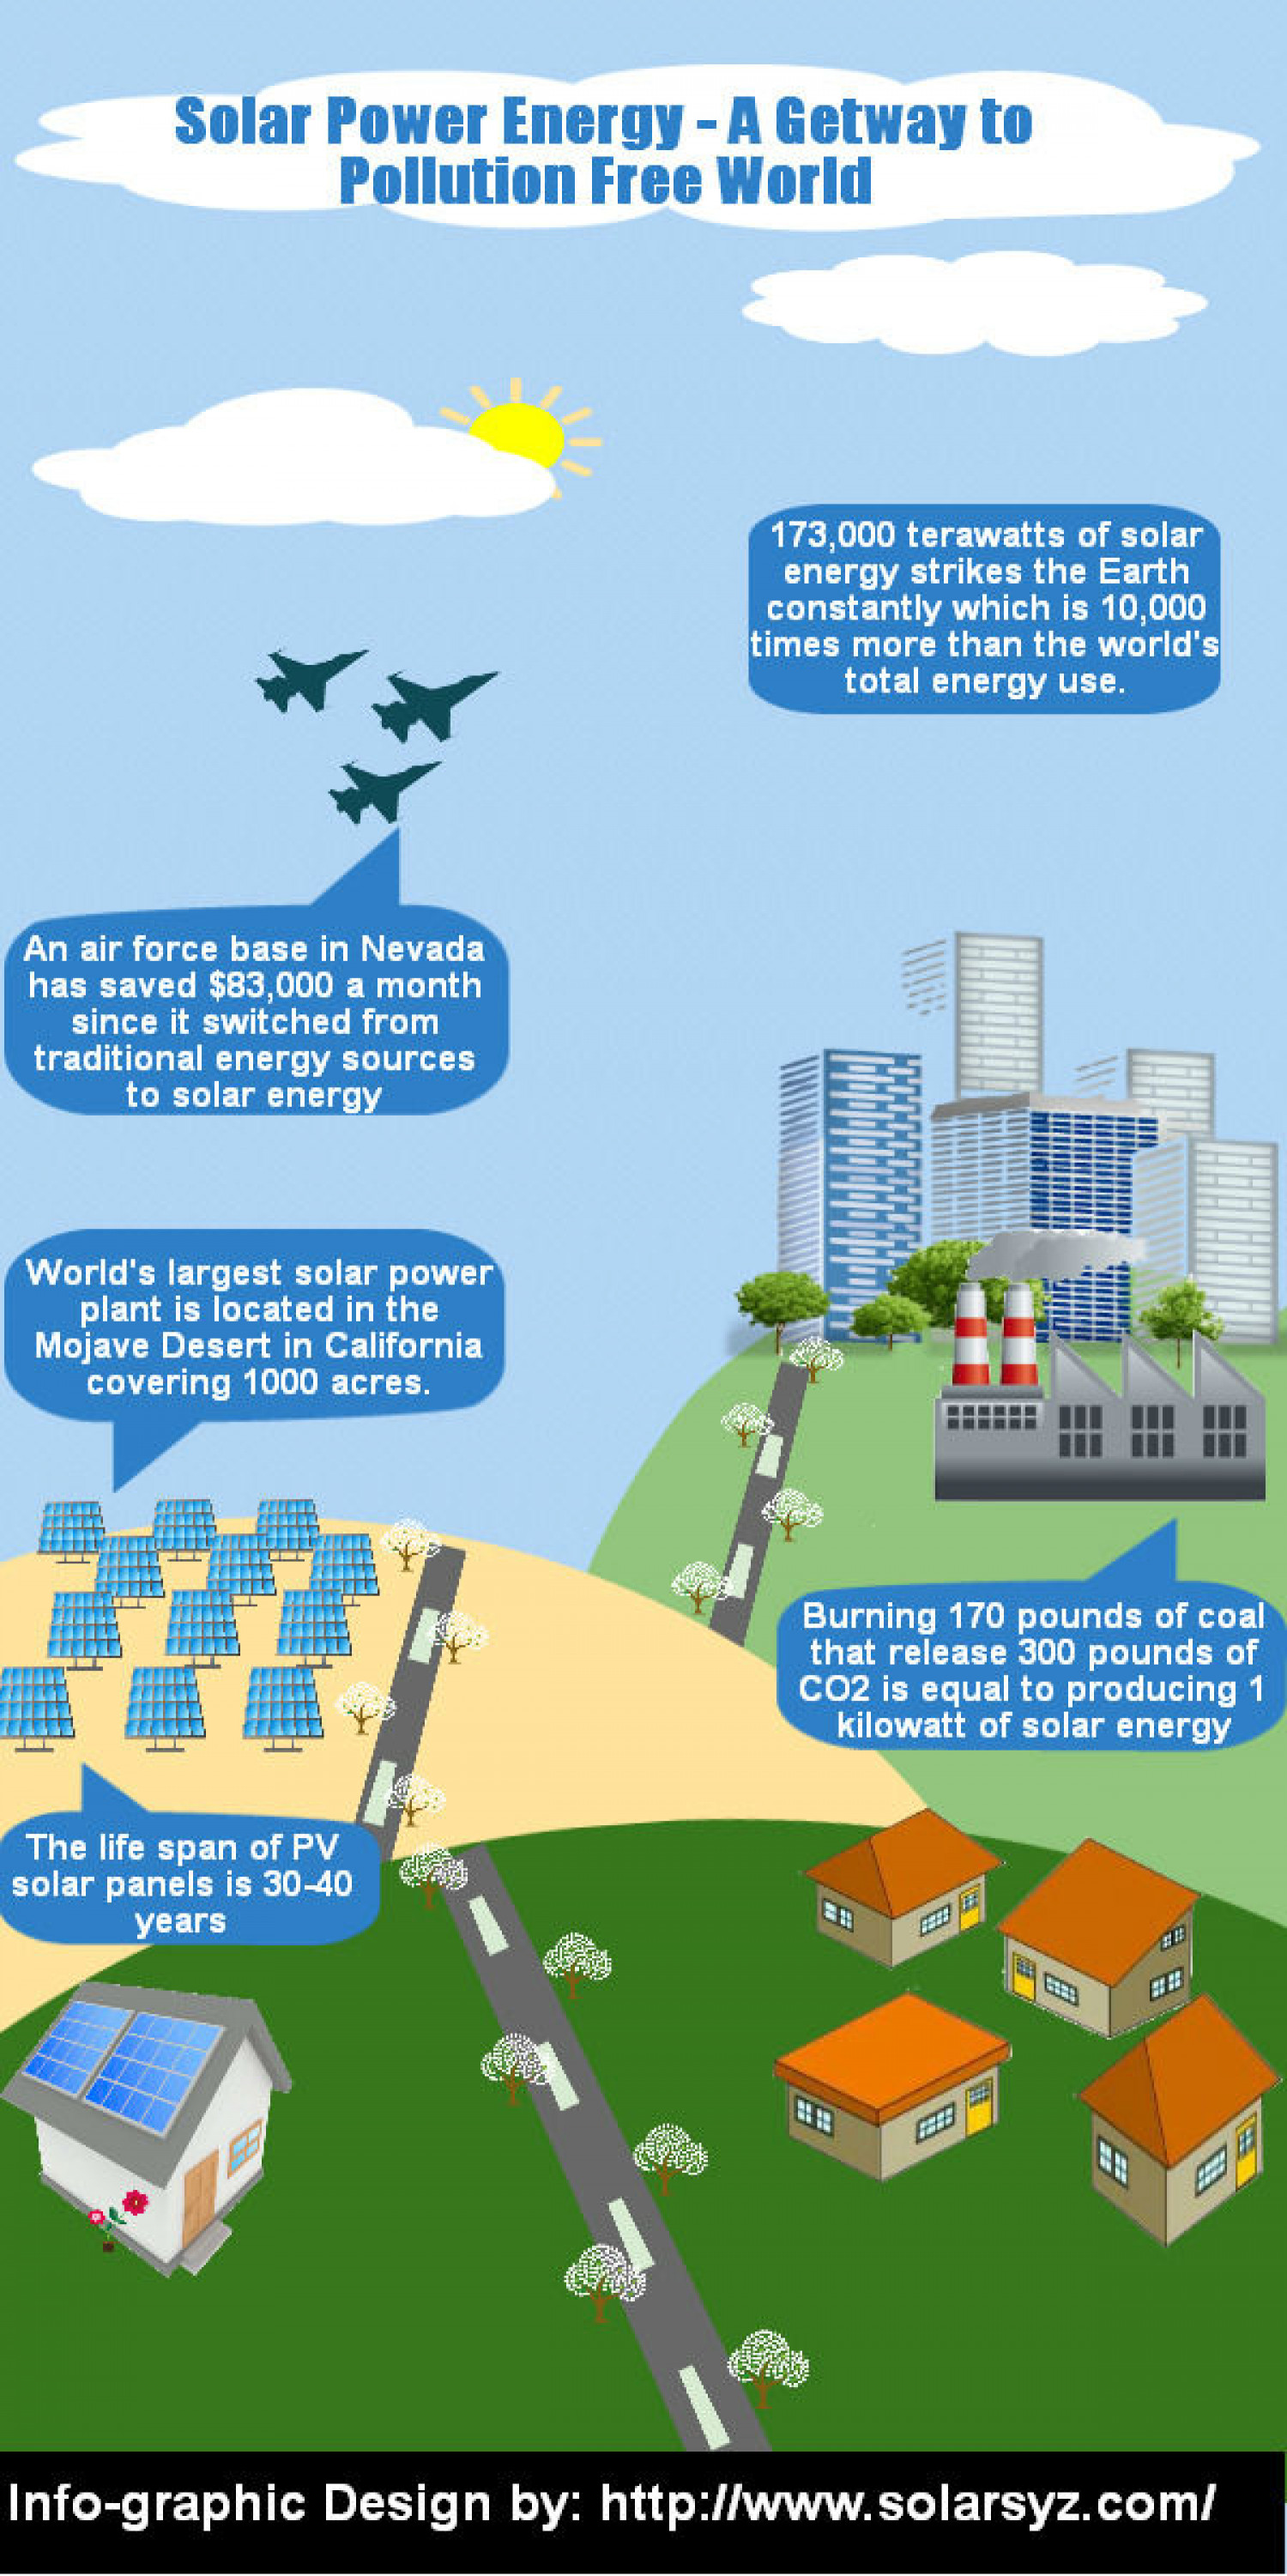 Solar Power Energy - A Getway to Pollution Free World Infographic